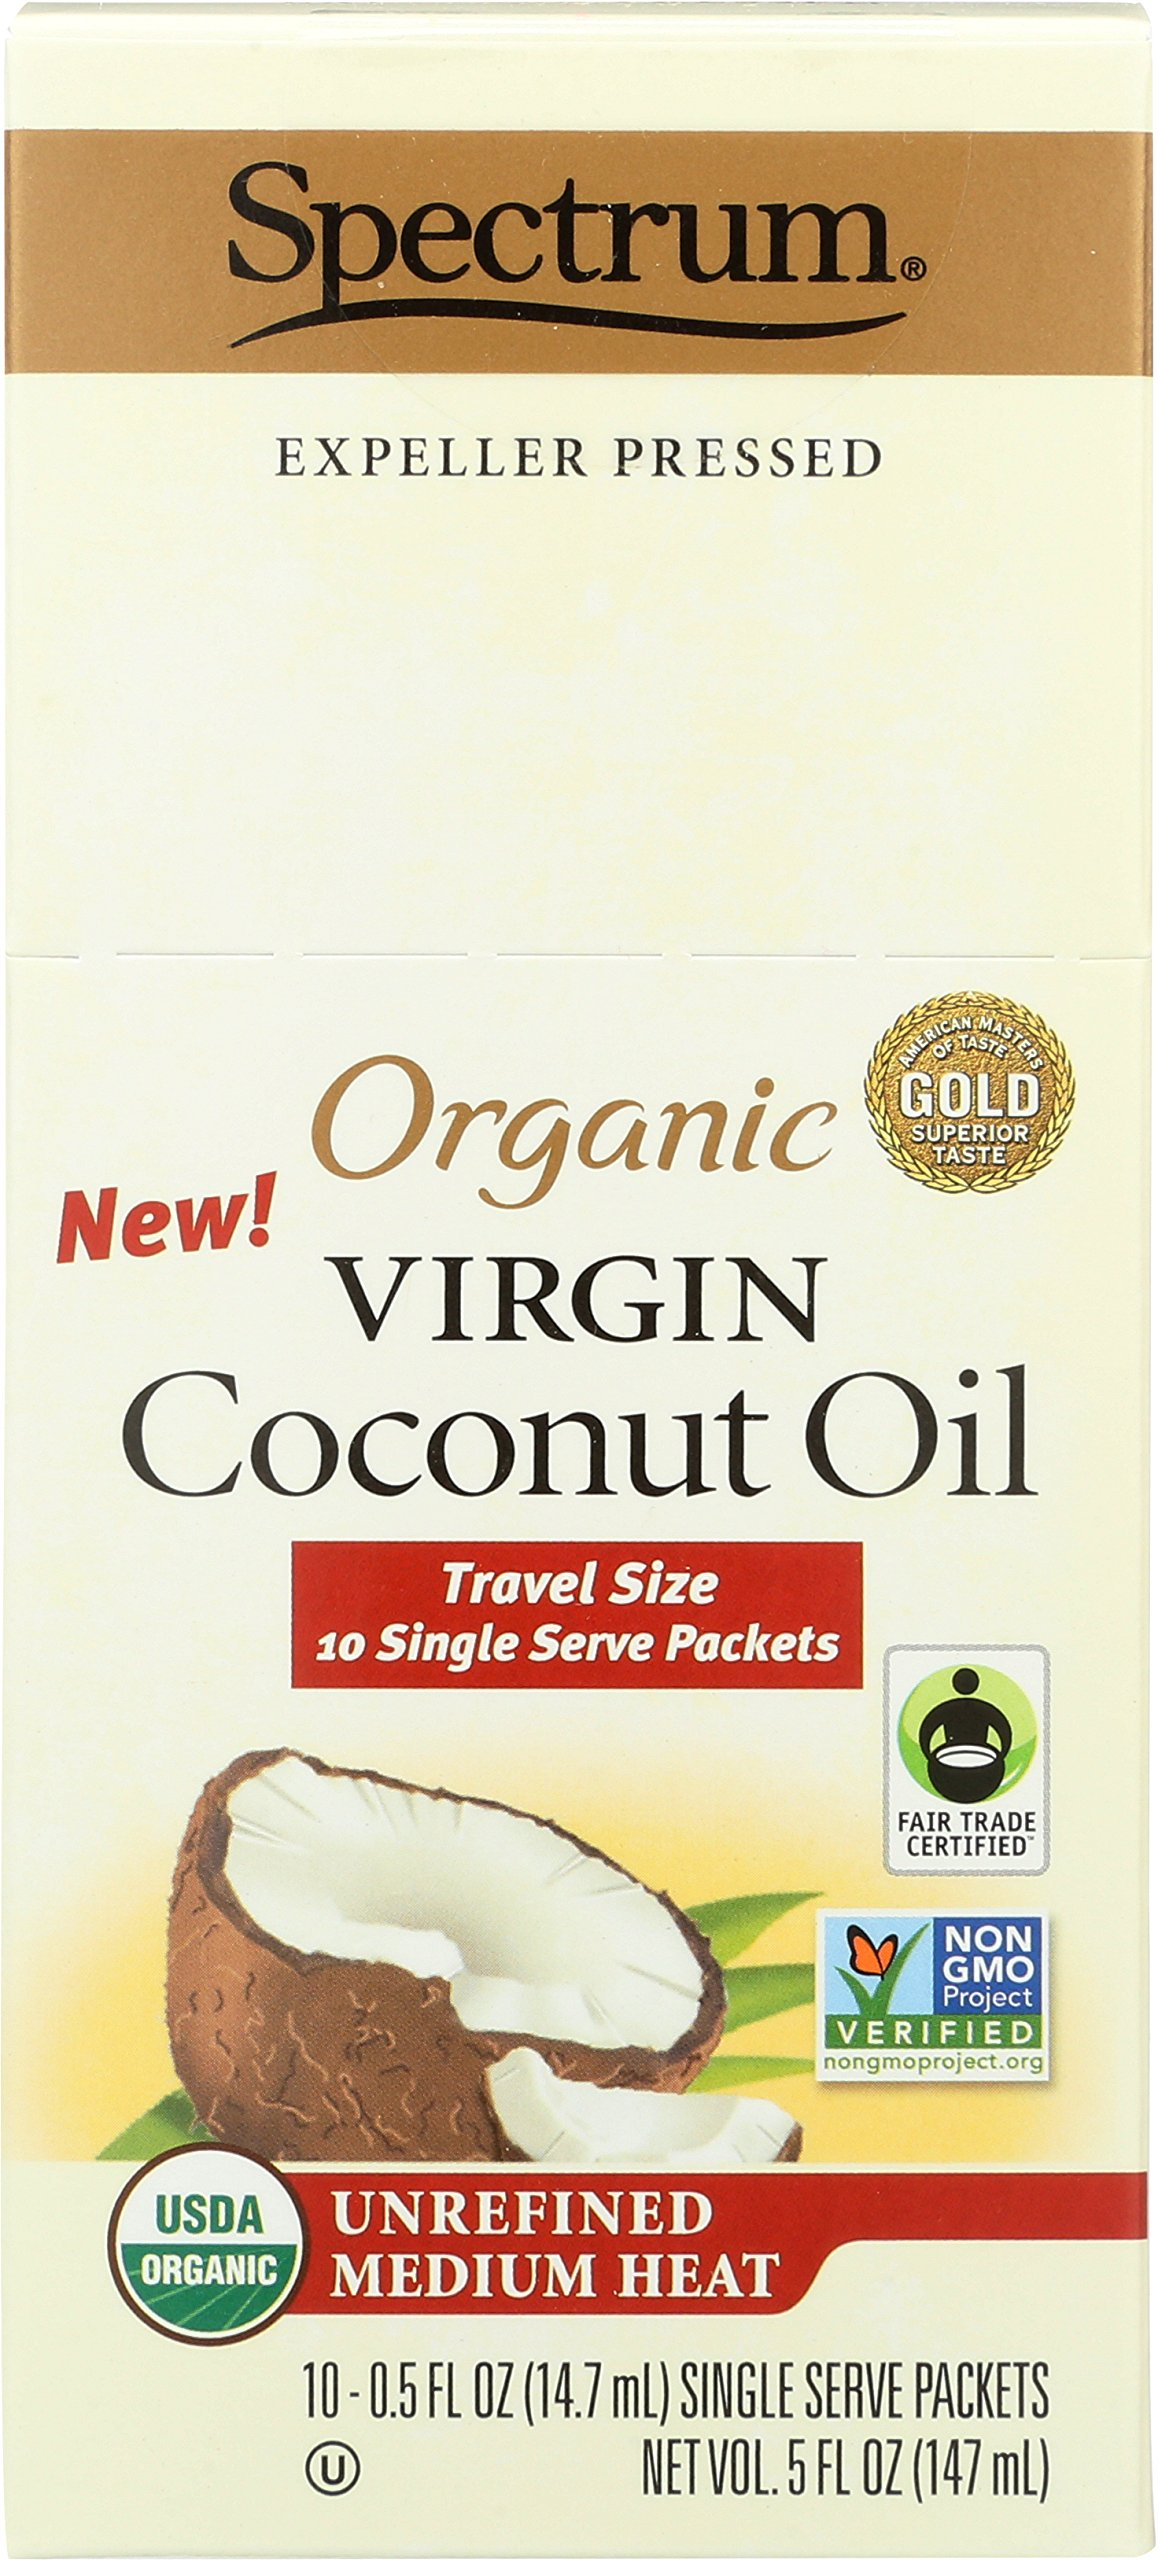 Spectrum Organic Unrefined Virgin Coconut Oil Packets, 10 Count